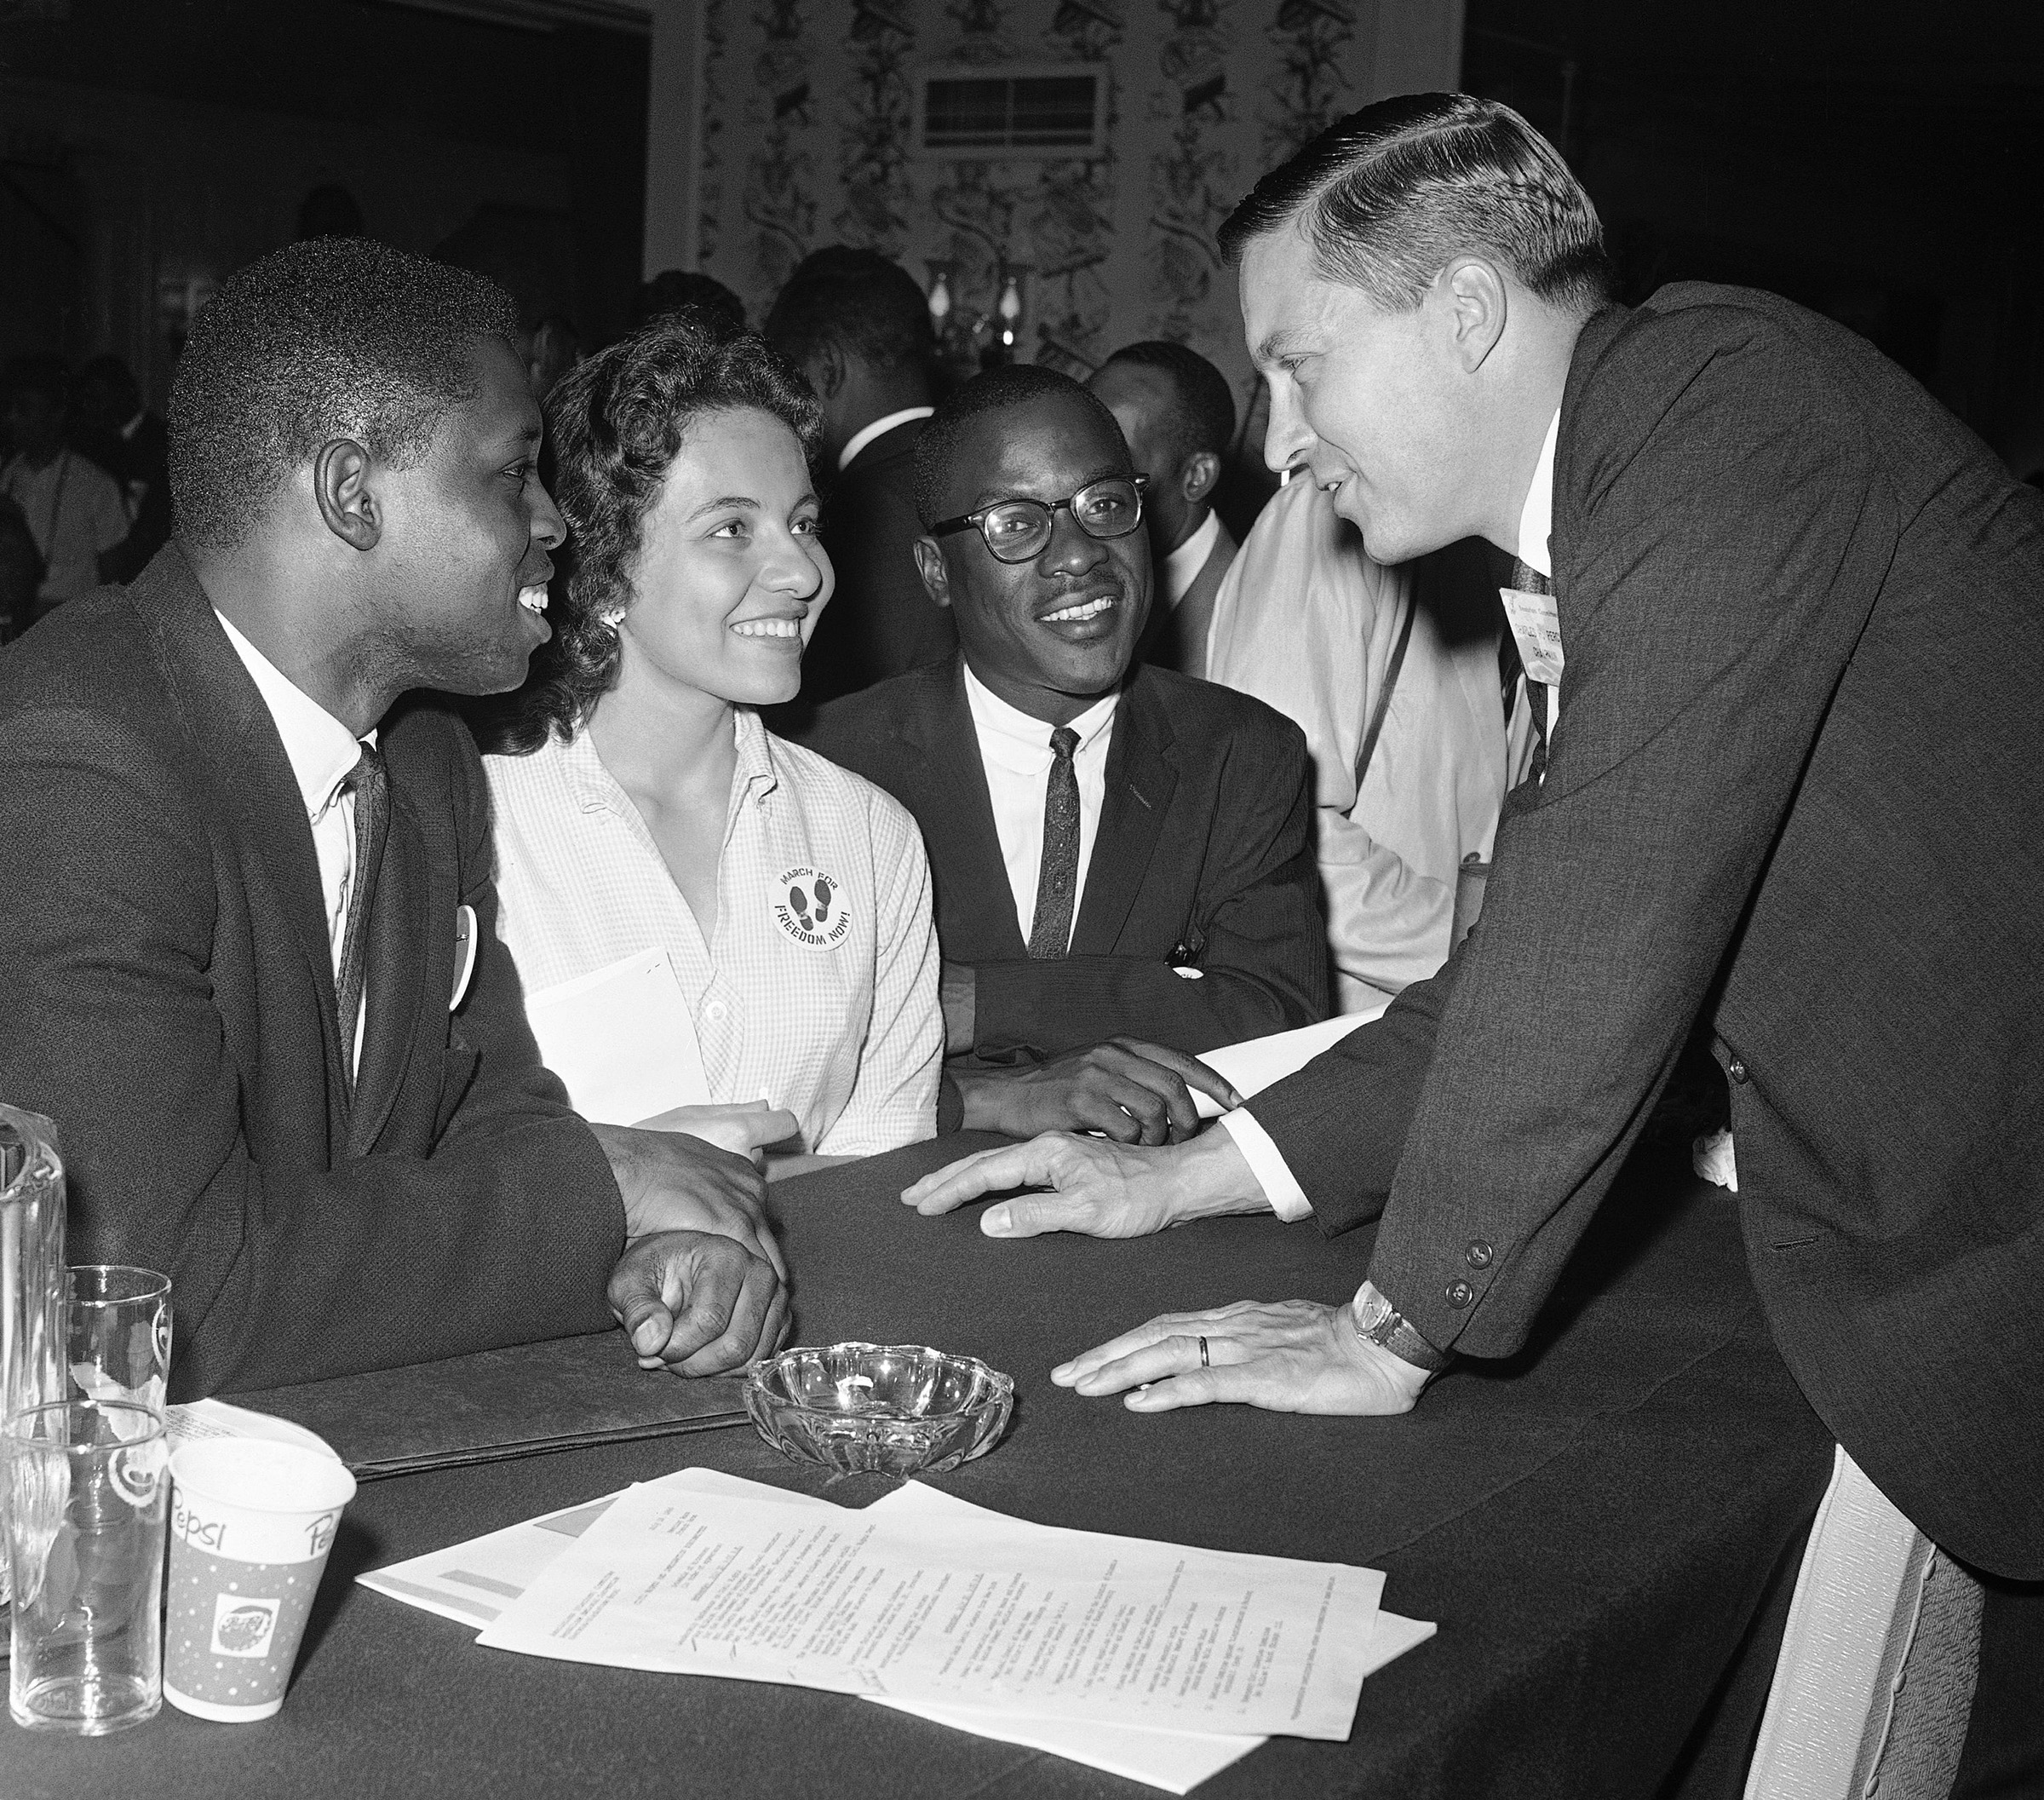 Charles H. Percy (R), chairman of the platform committee of the Republican Party, discusses civil rights with (L-R), Walter Bradford, Diane Nash, and Bernard Lee in Chicago on July 20, 1960.